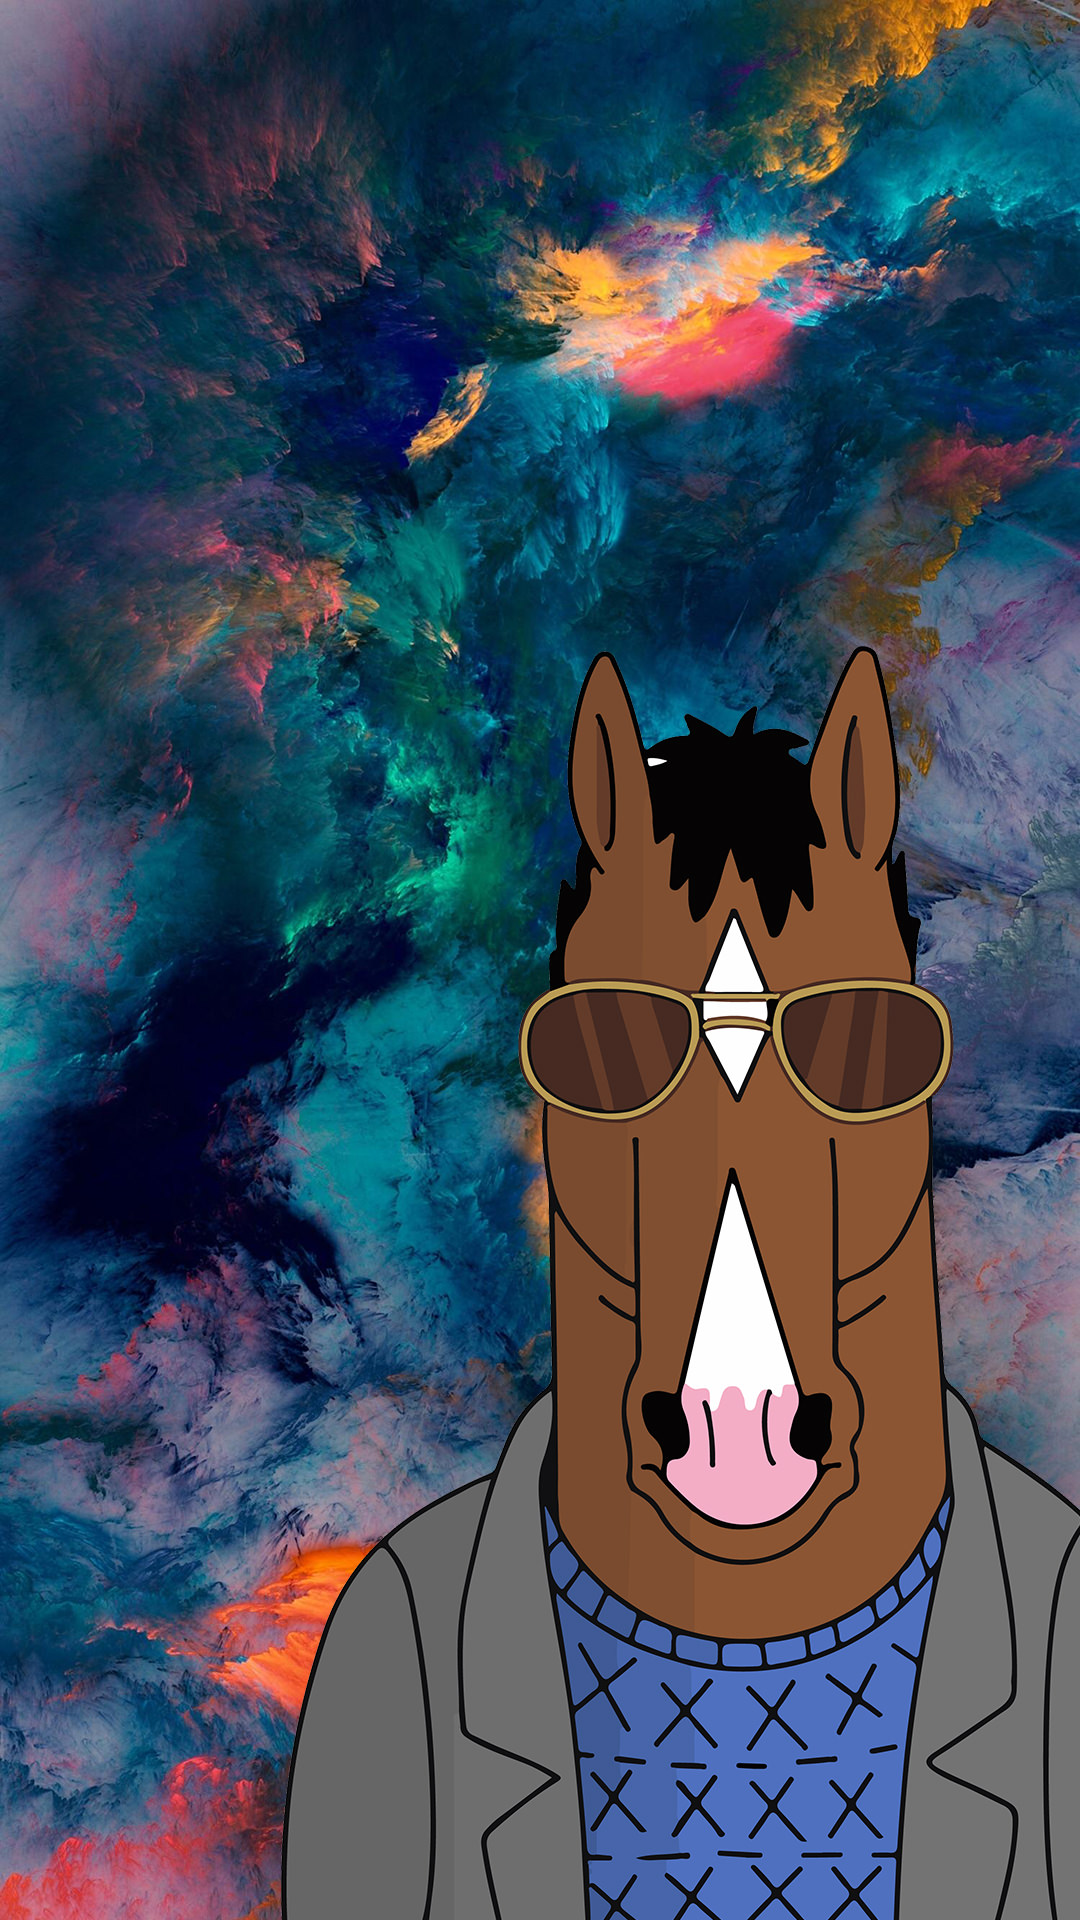 Bojack horseman phone wallpaper   Album on Imgur 1080x1920